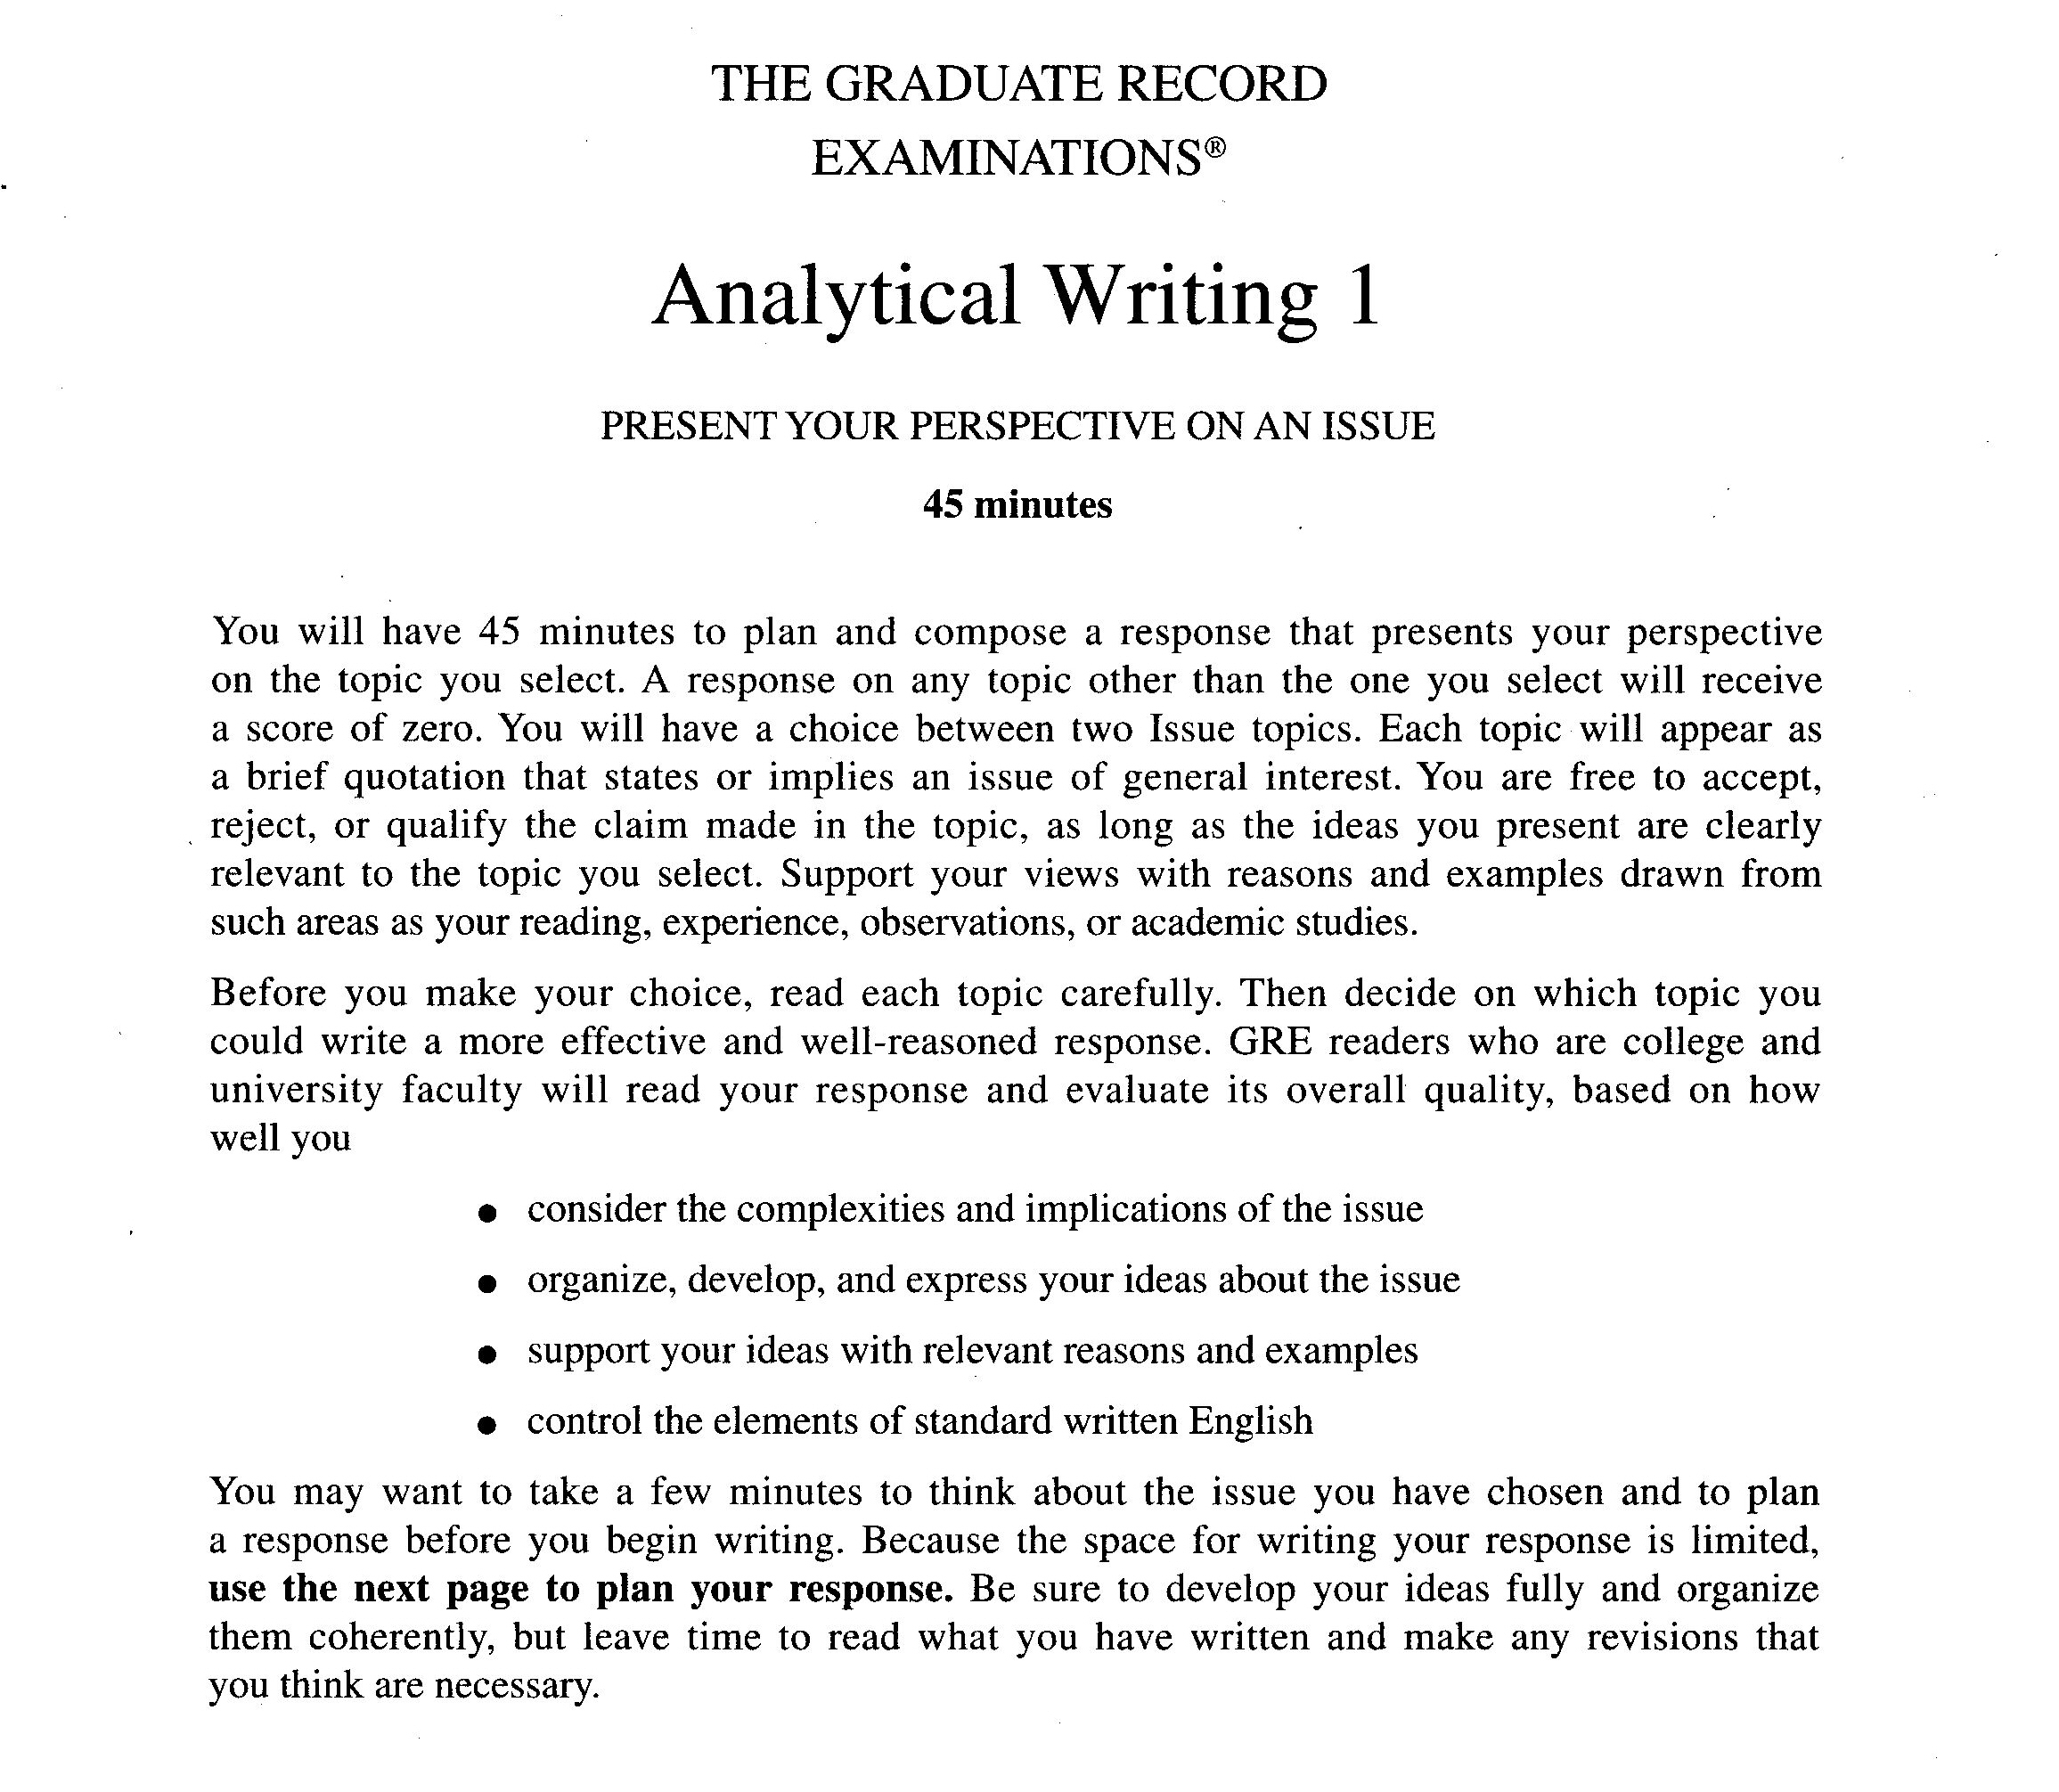 024 Essay Example Analytical20writing20issue20task20directions20for20gre201 Cheap Top Writing Service Reviews 2017 Canada Full